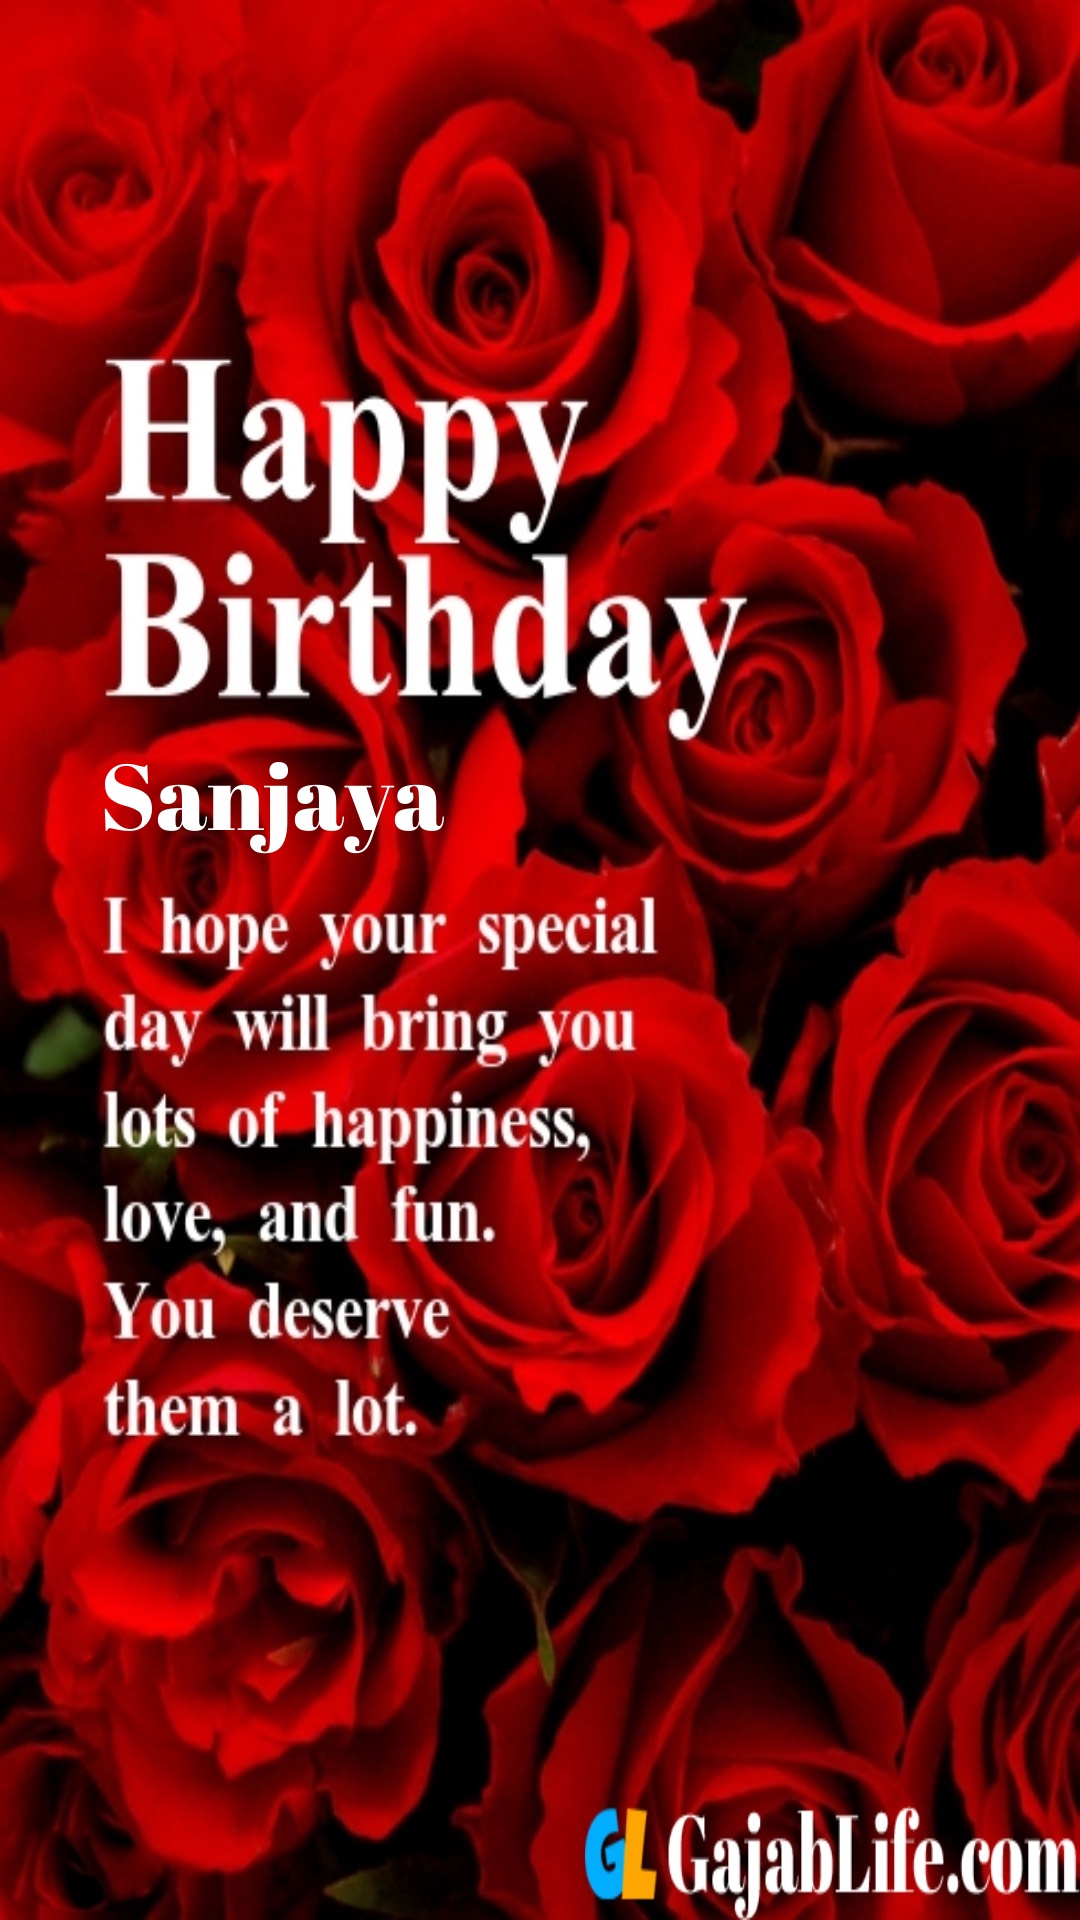 Sanjaya birthday greeting card with rose & love